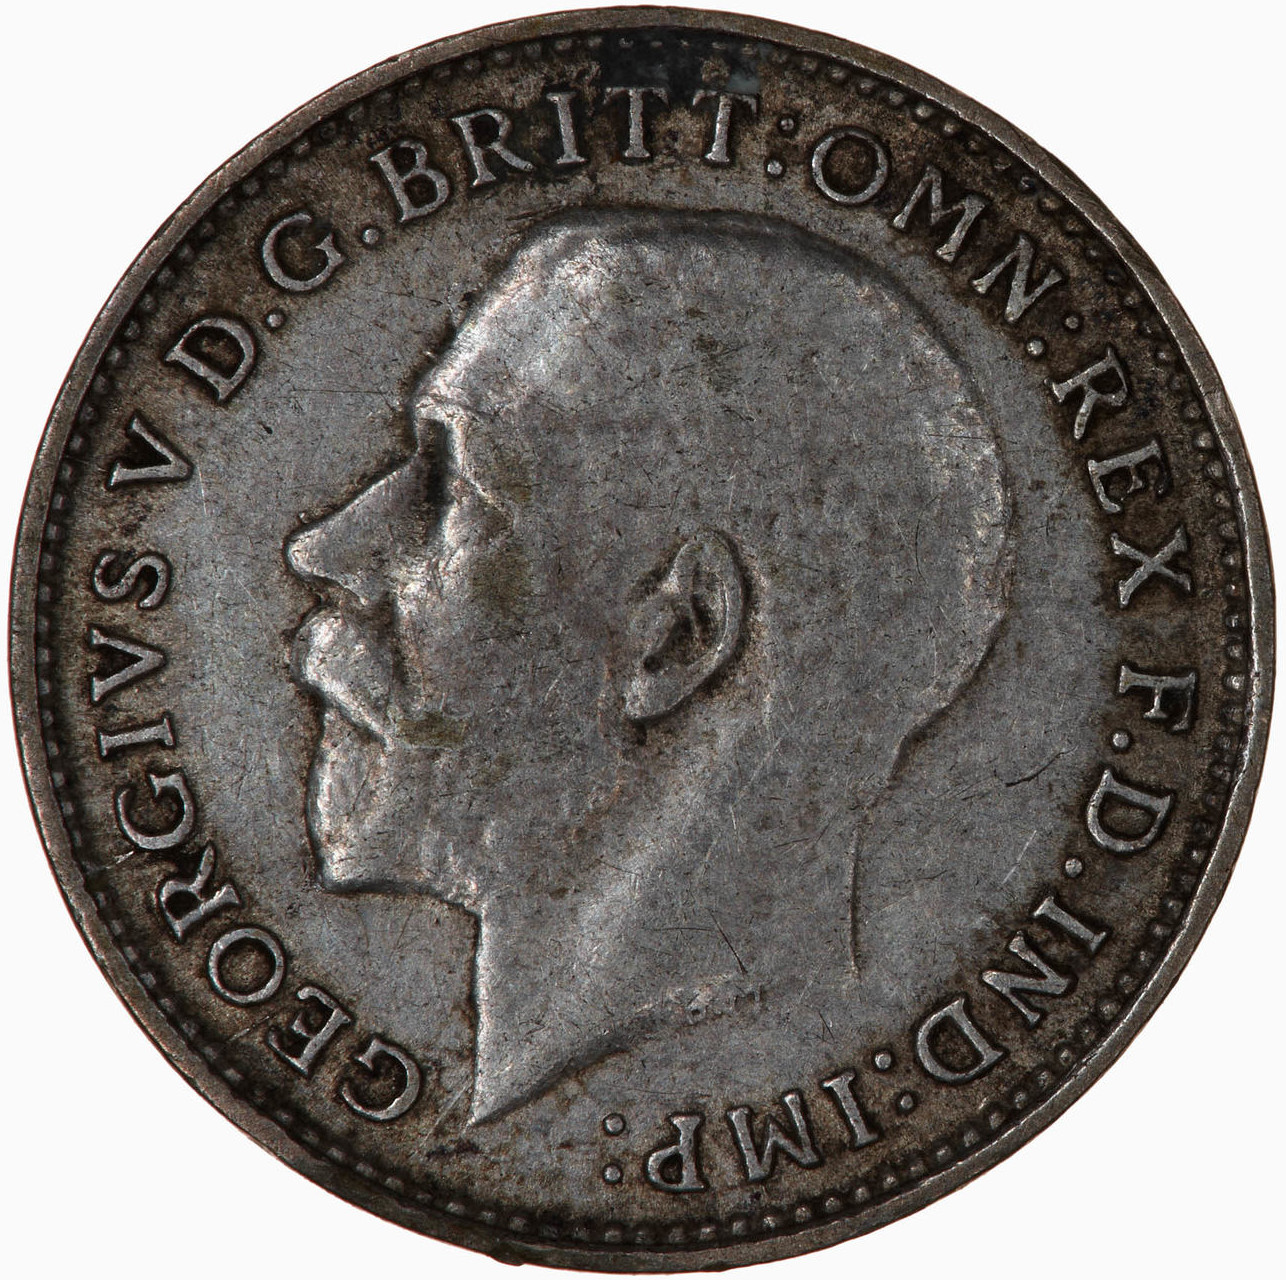 Threepence 1925 (Circulating): Photo Coin - Threepence, George V, Great Britain, 1925